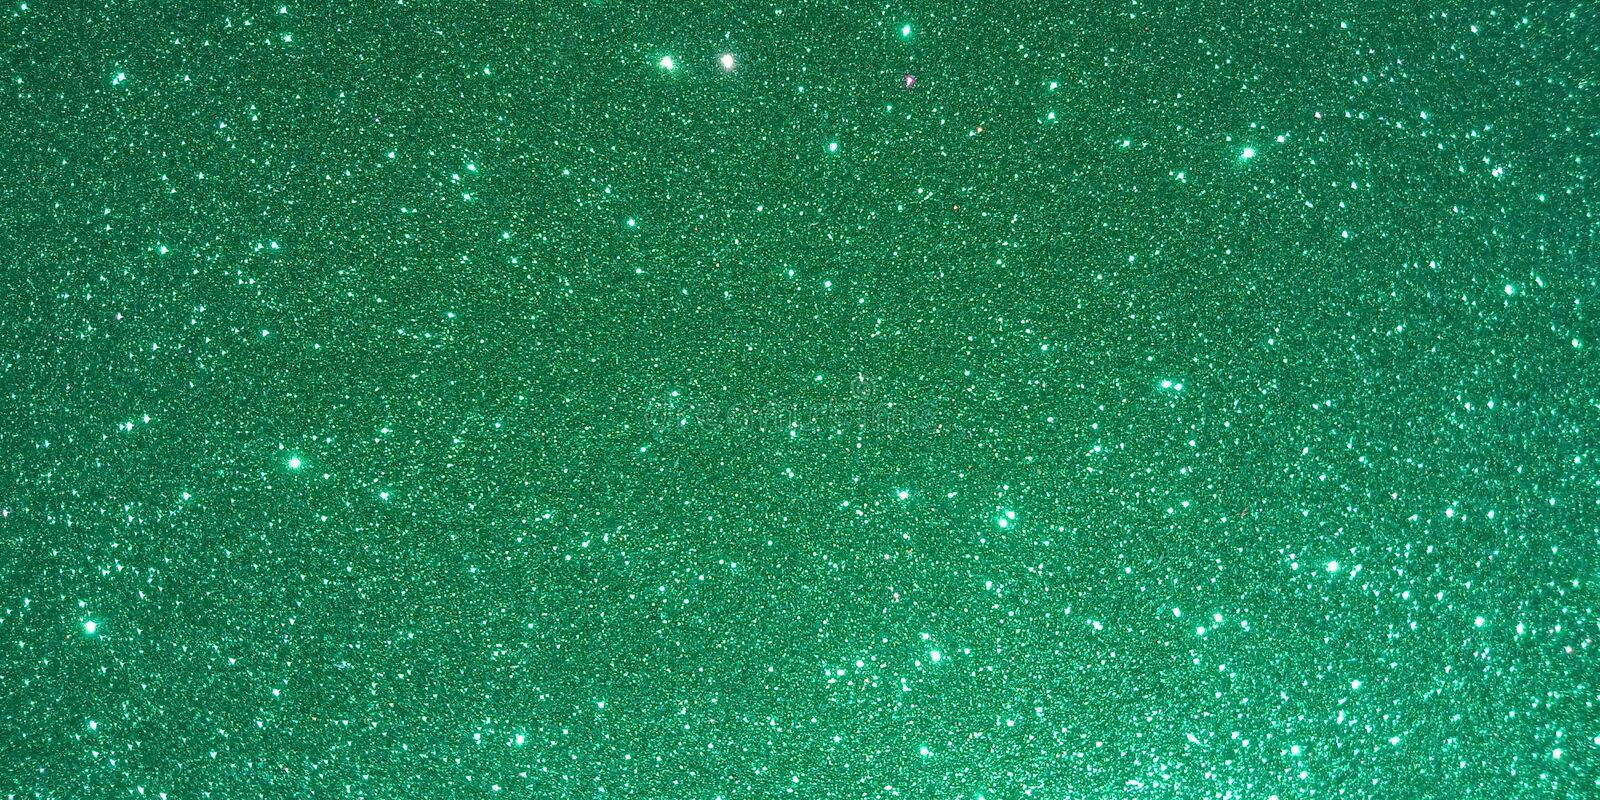 Green textured background with glitter effect background stock illustration